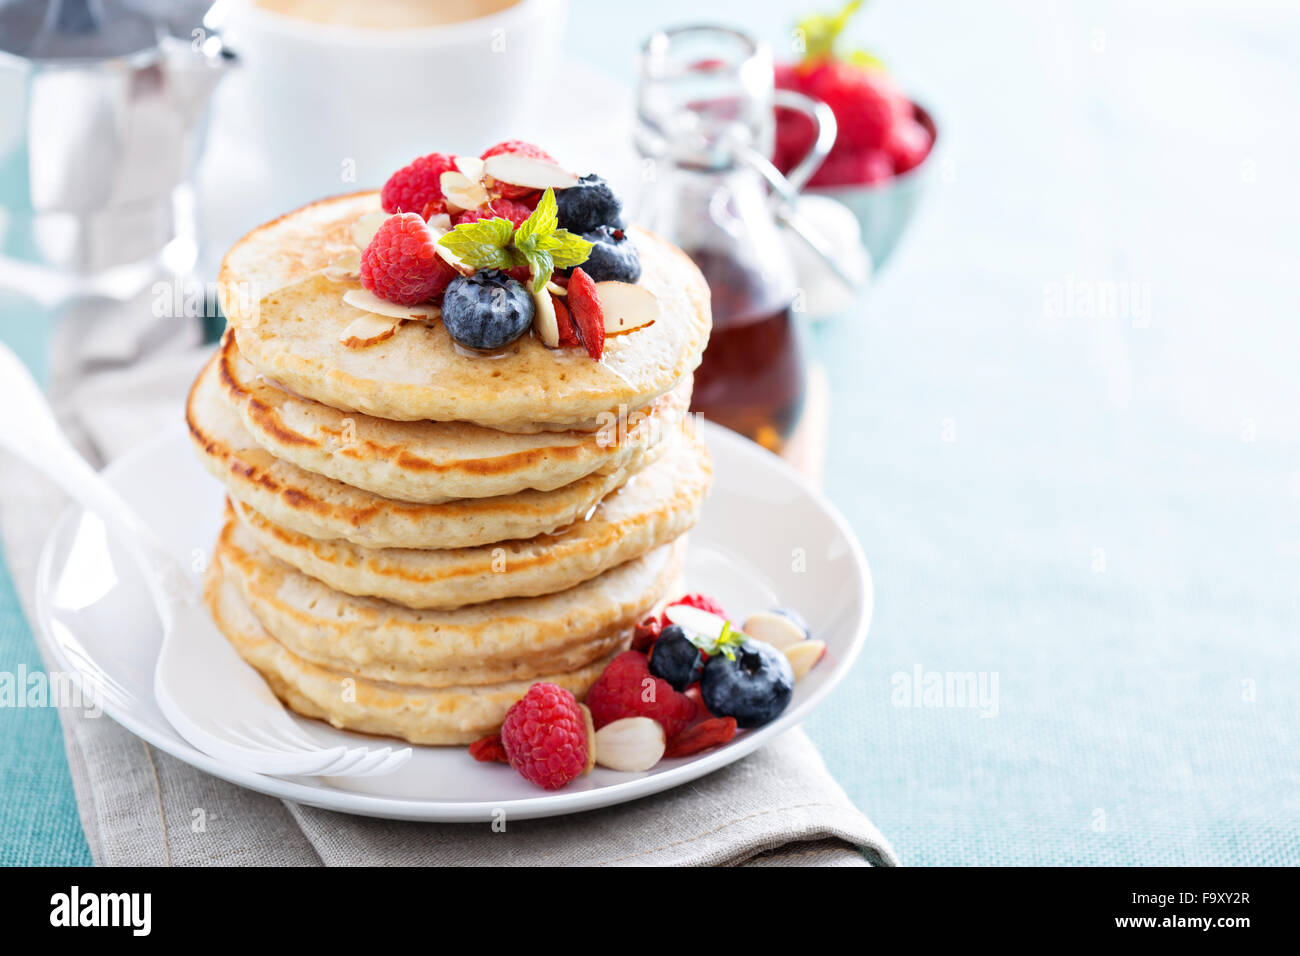 Fluffy oatmeal pancakes stack with fresh berries, coffee and syrup - Stock Image